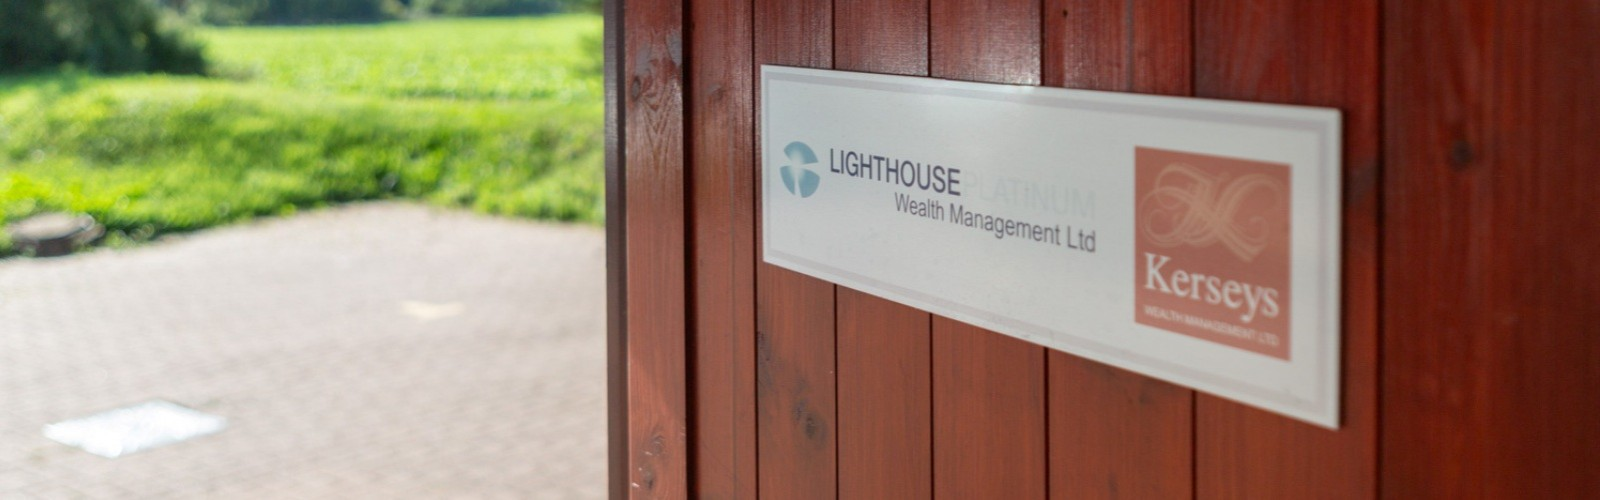 Lighthouse Platinum Wealth Management